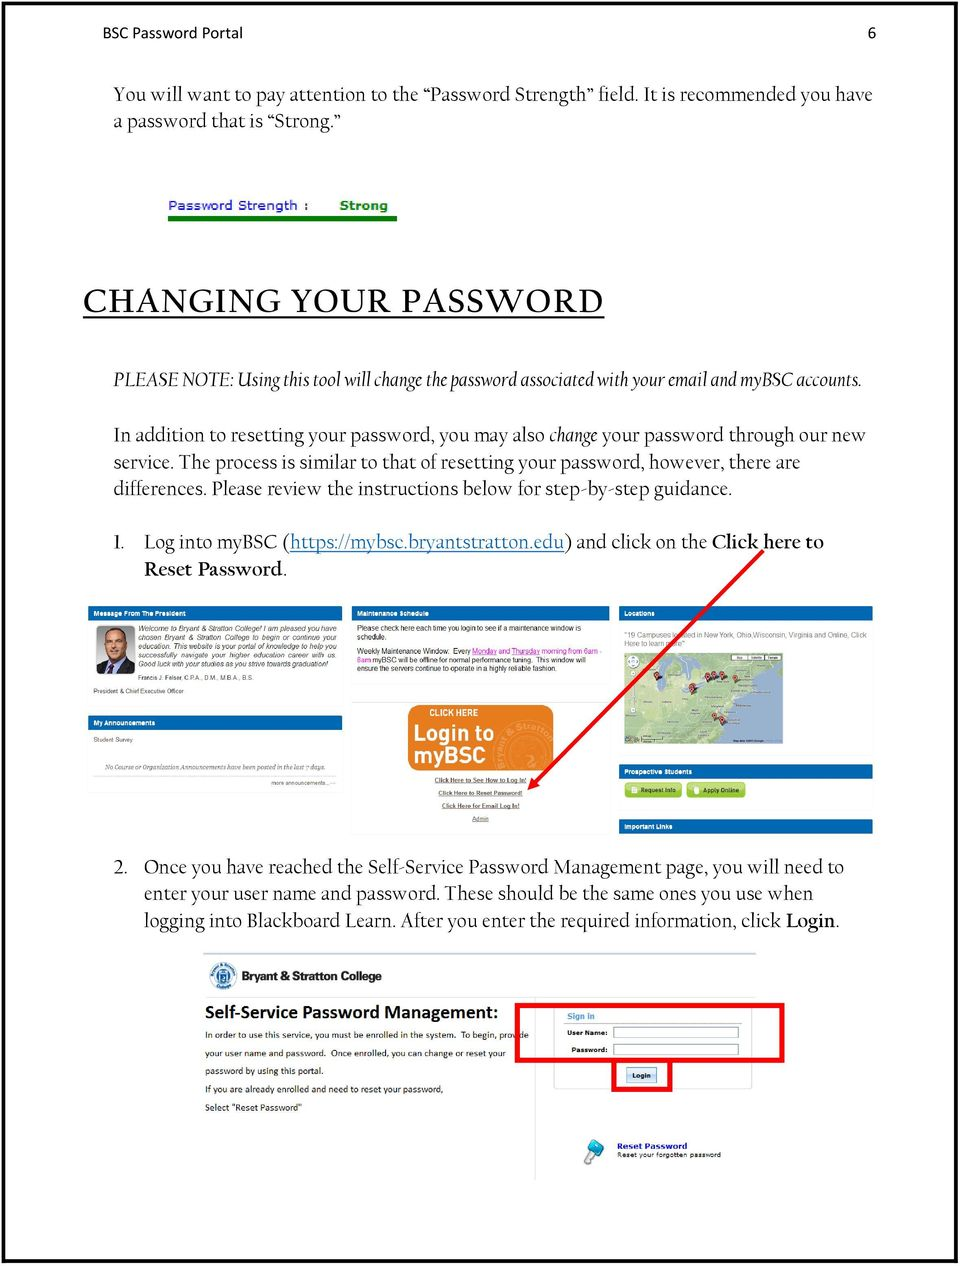 In addition to resetting your password, you may also change your password through our new service. The process is similar to that of resetting your password, however, there are differences.